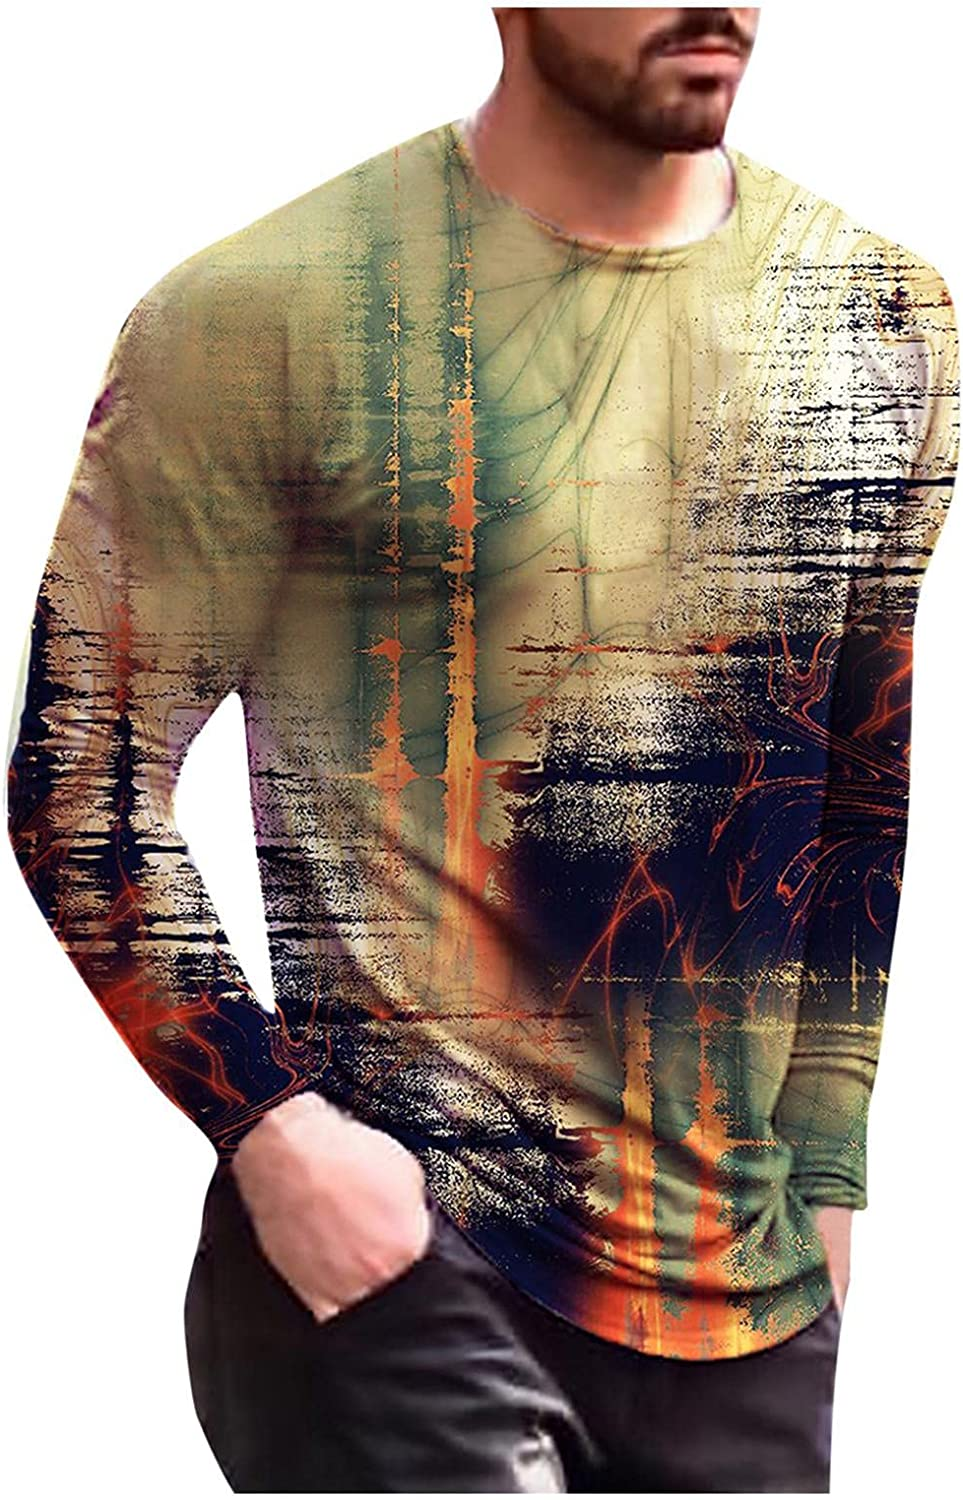 Aayomet Long Sleeve Tee Shirts for Men Autumn Polyester Printed Graphic Tees Casual O-Neck Fashion Mens Tops